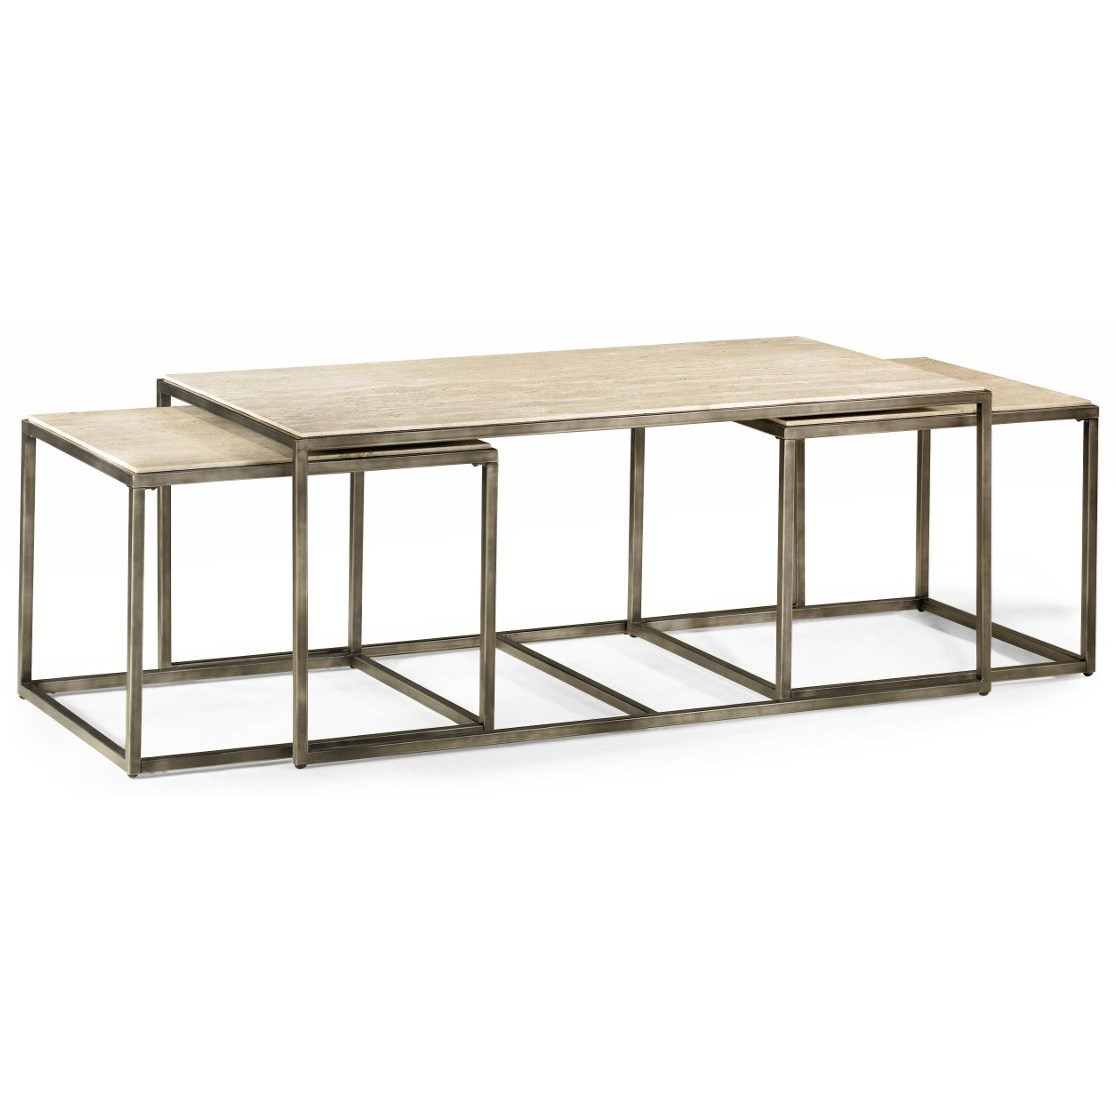 Rectangular cocktail table with bronze with nesting tables for Coffee tables york pa